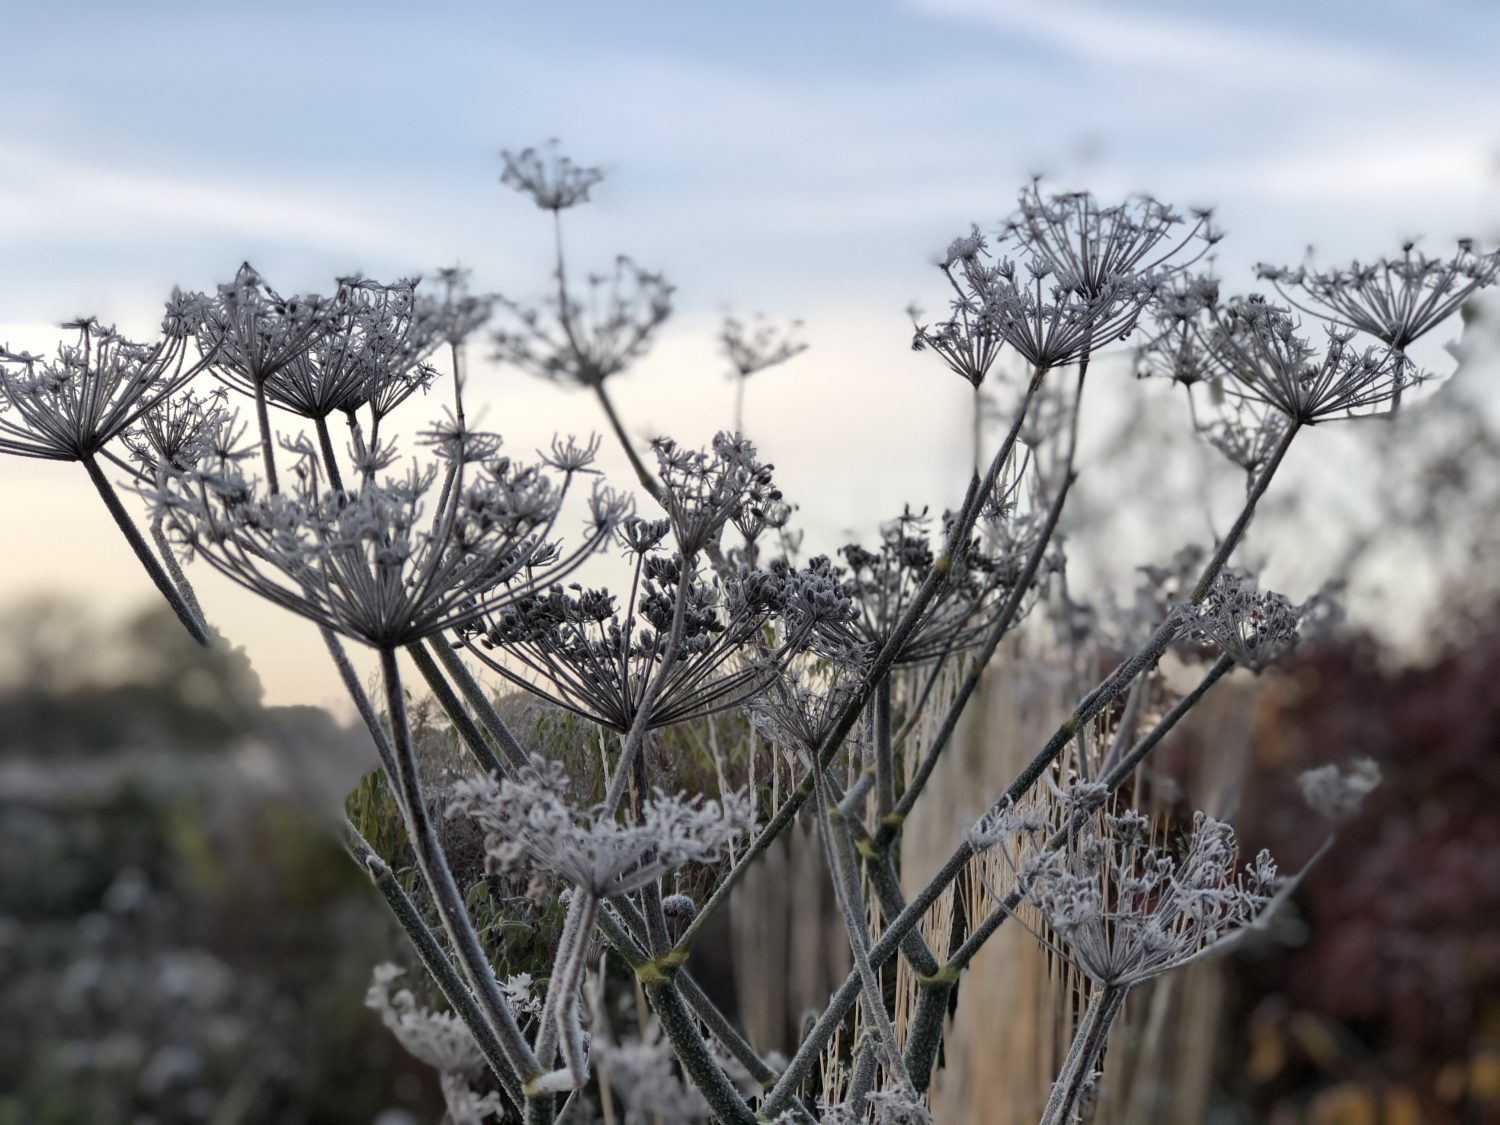 Long-lasting seedheads are also useful for wildlife – birds will eat the seeds and insects will use hollow stems for refuge until the spring